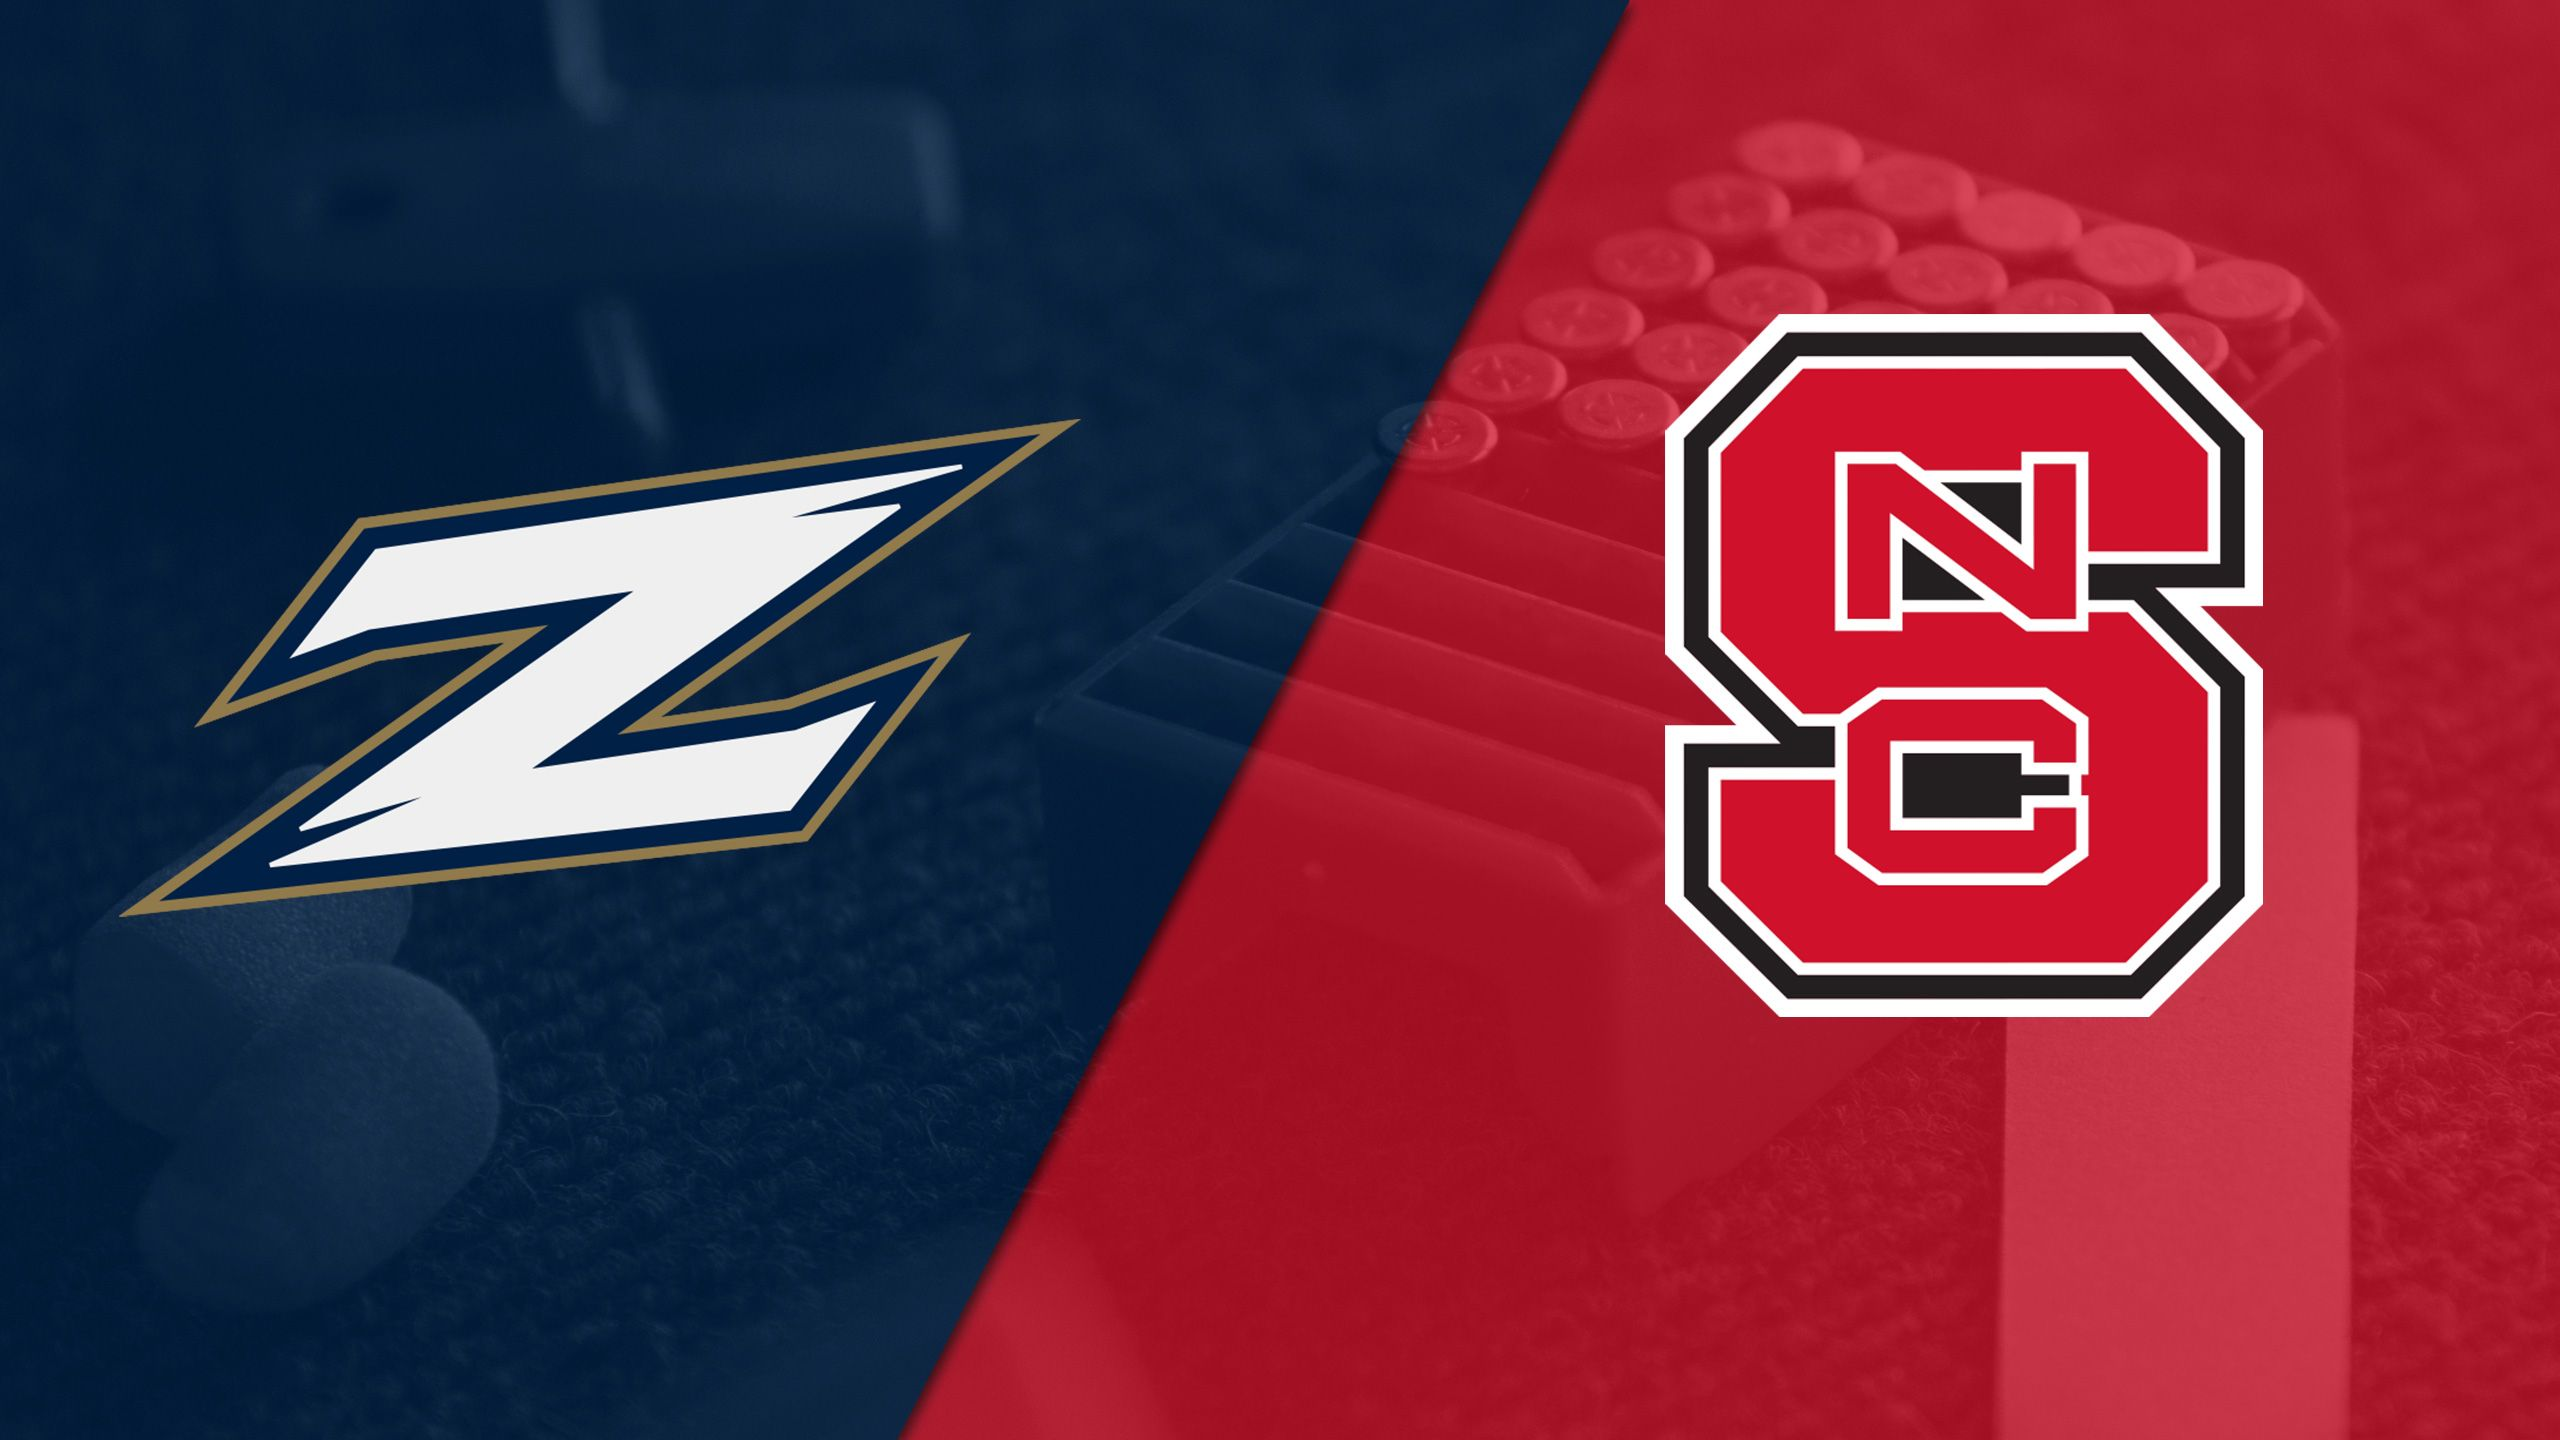 Akron vs. NC State (Rifle)